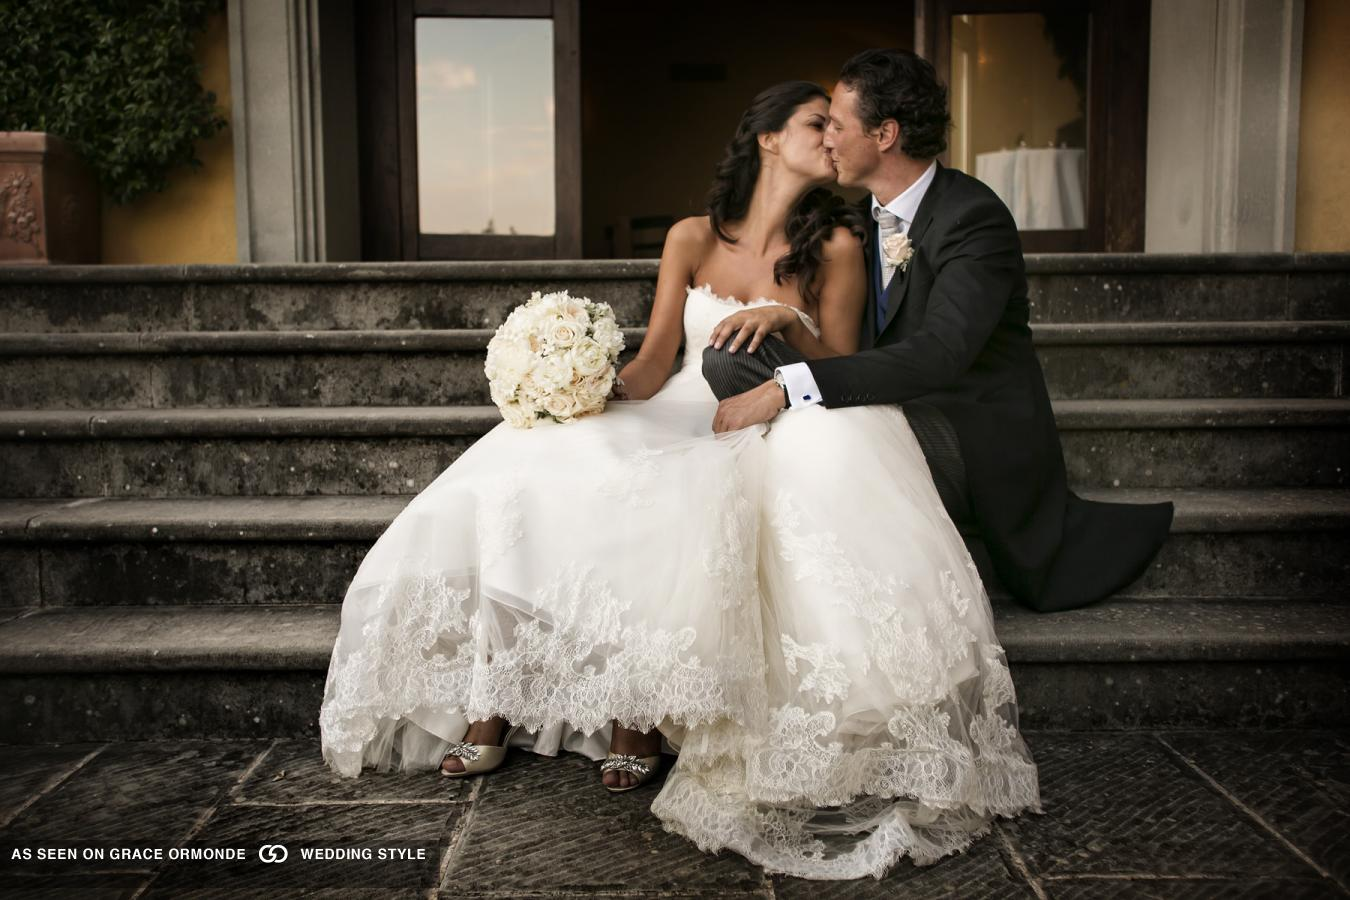 david-bastianoni-wedding-2015-15_0 :: Grace Ormonde :: Wedding photographer based in Florence Tuscany Italy :: photo-4 :: david-bastianoni-wedding-2015-15_0